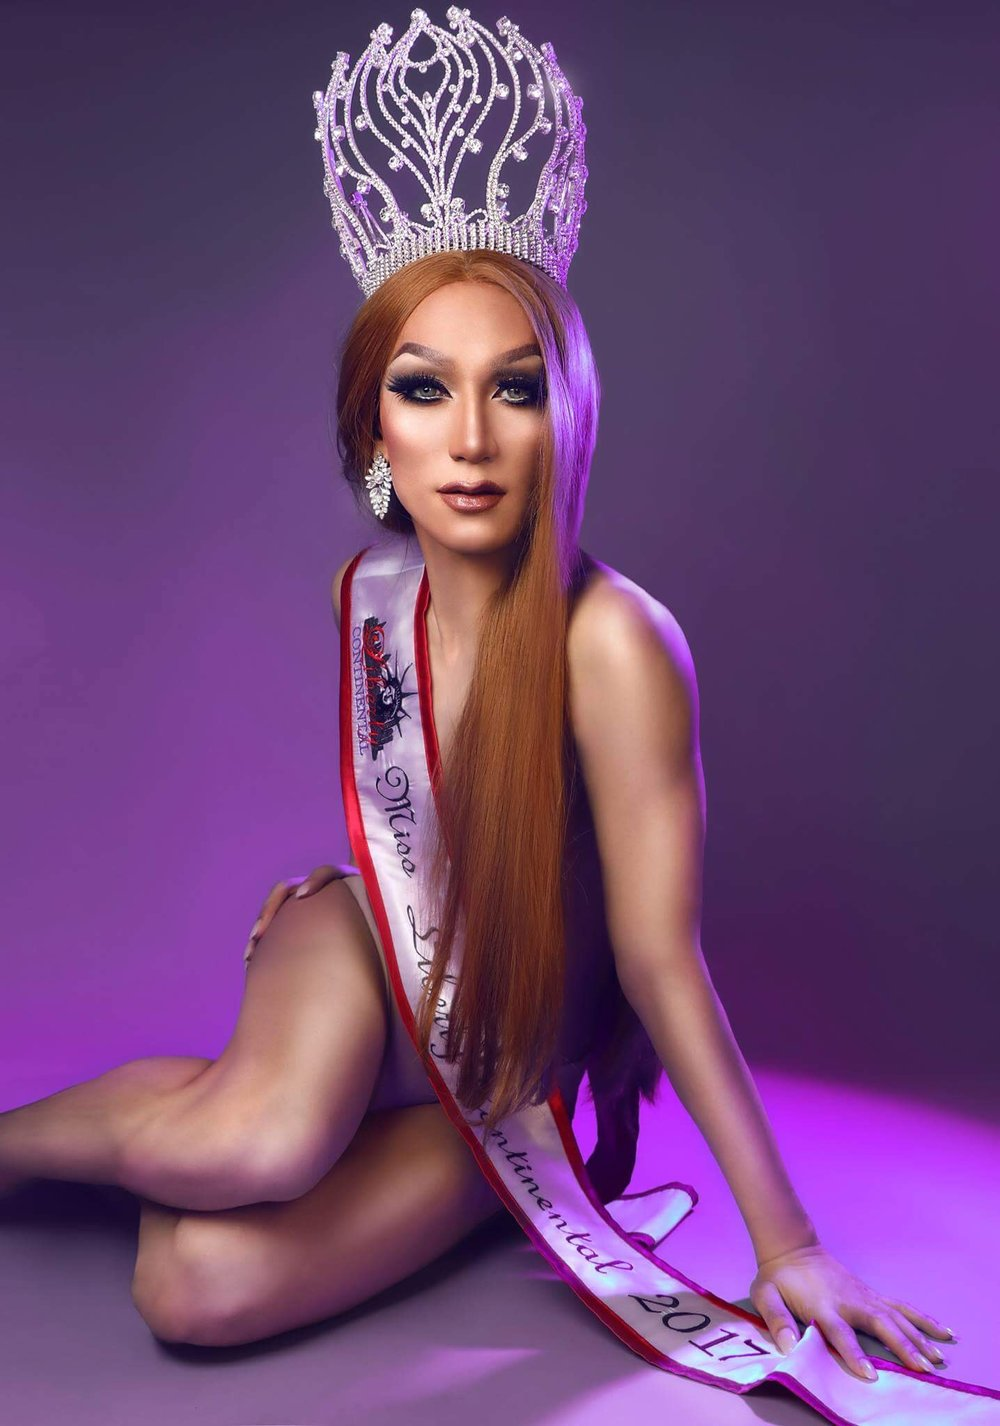 Reigning Miss Liberty Continental 2017-2018